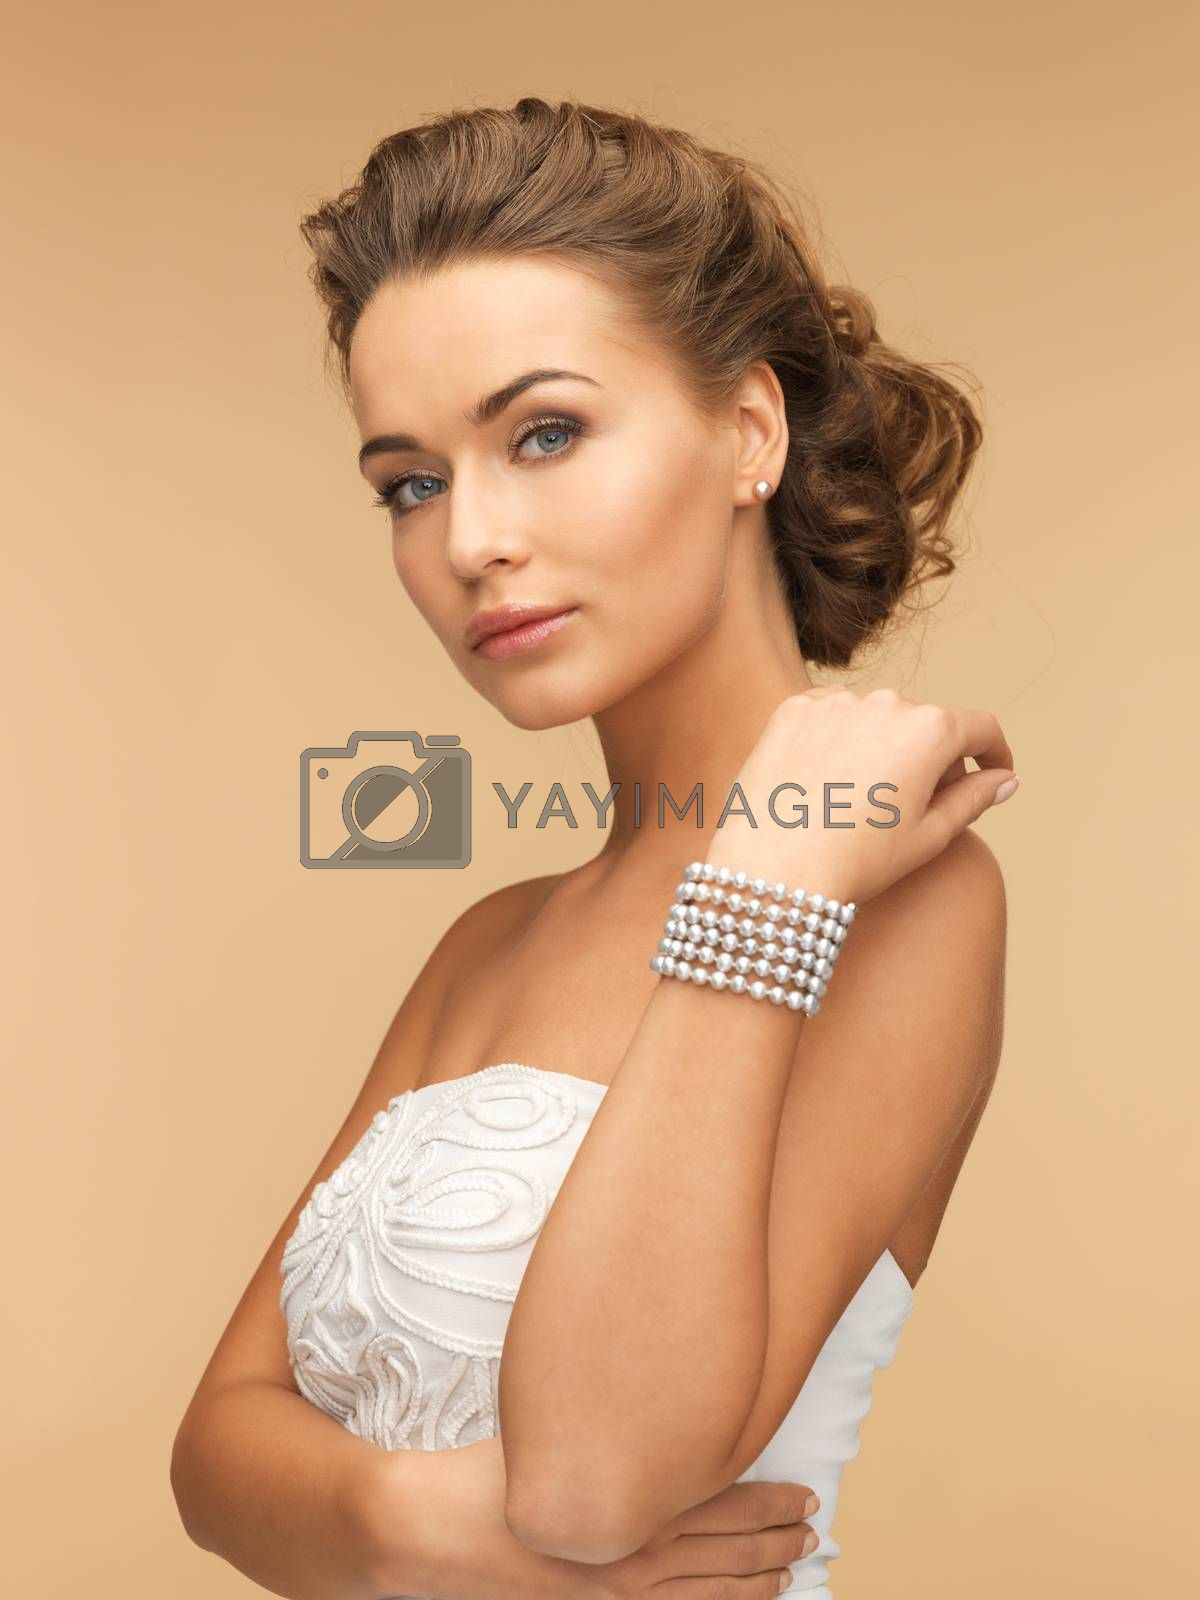 woman with pearl earrings and bracelet by dolgachov